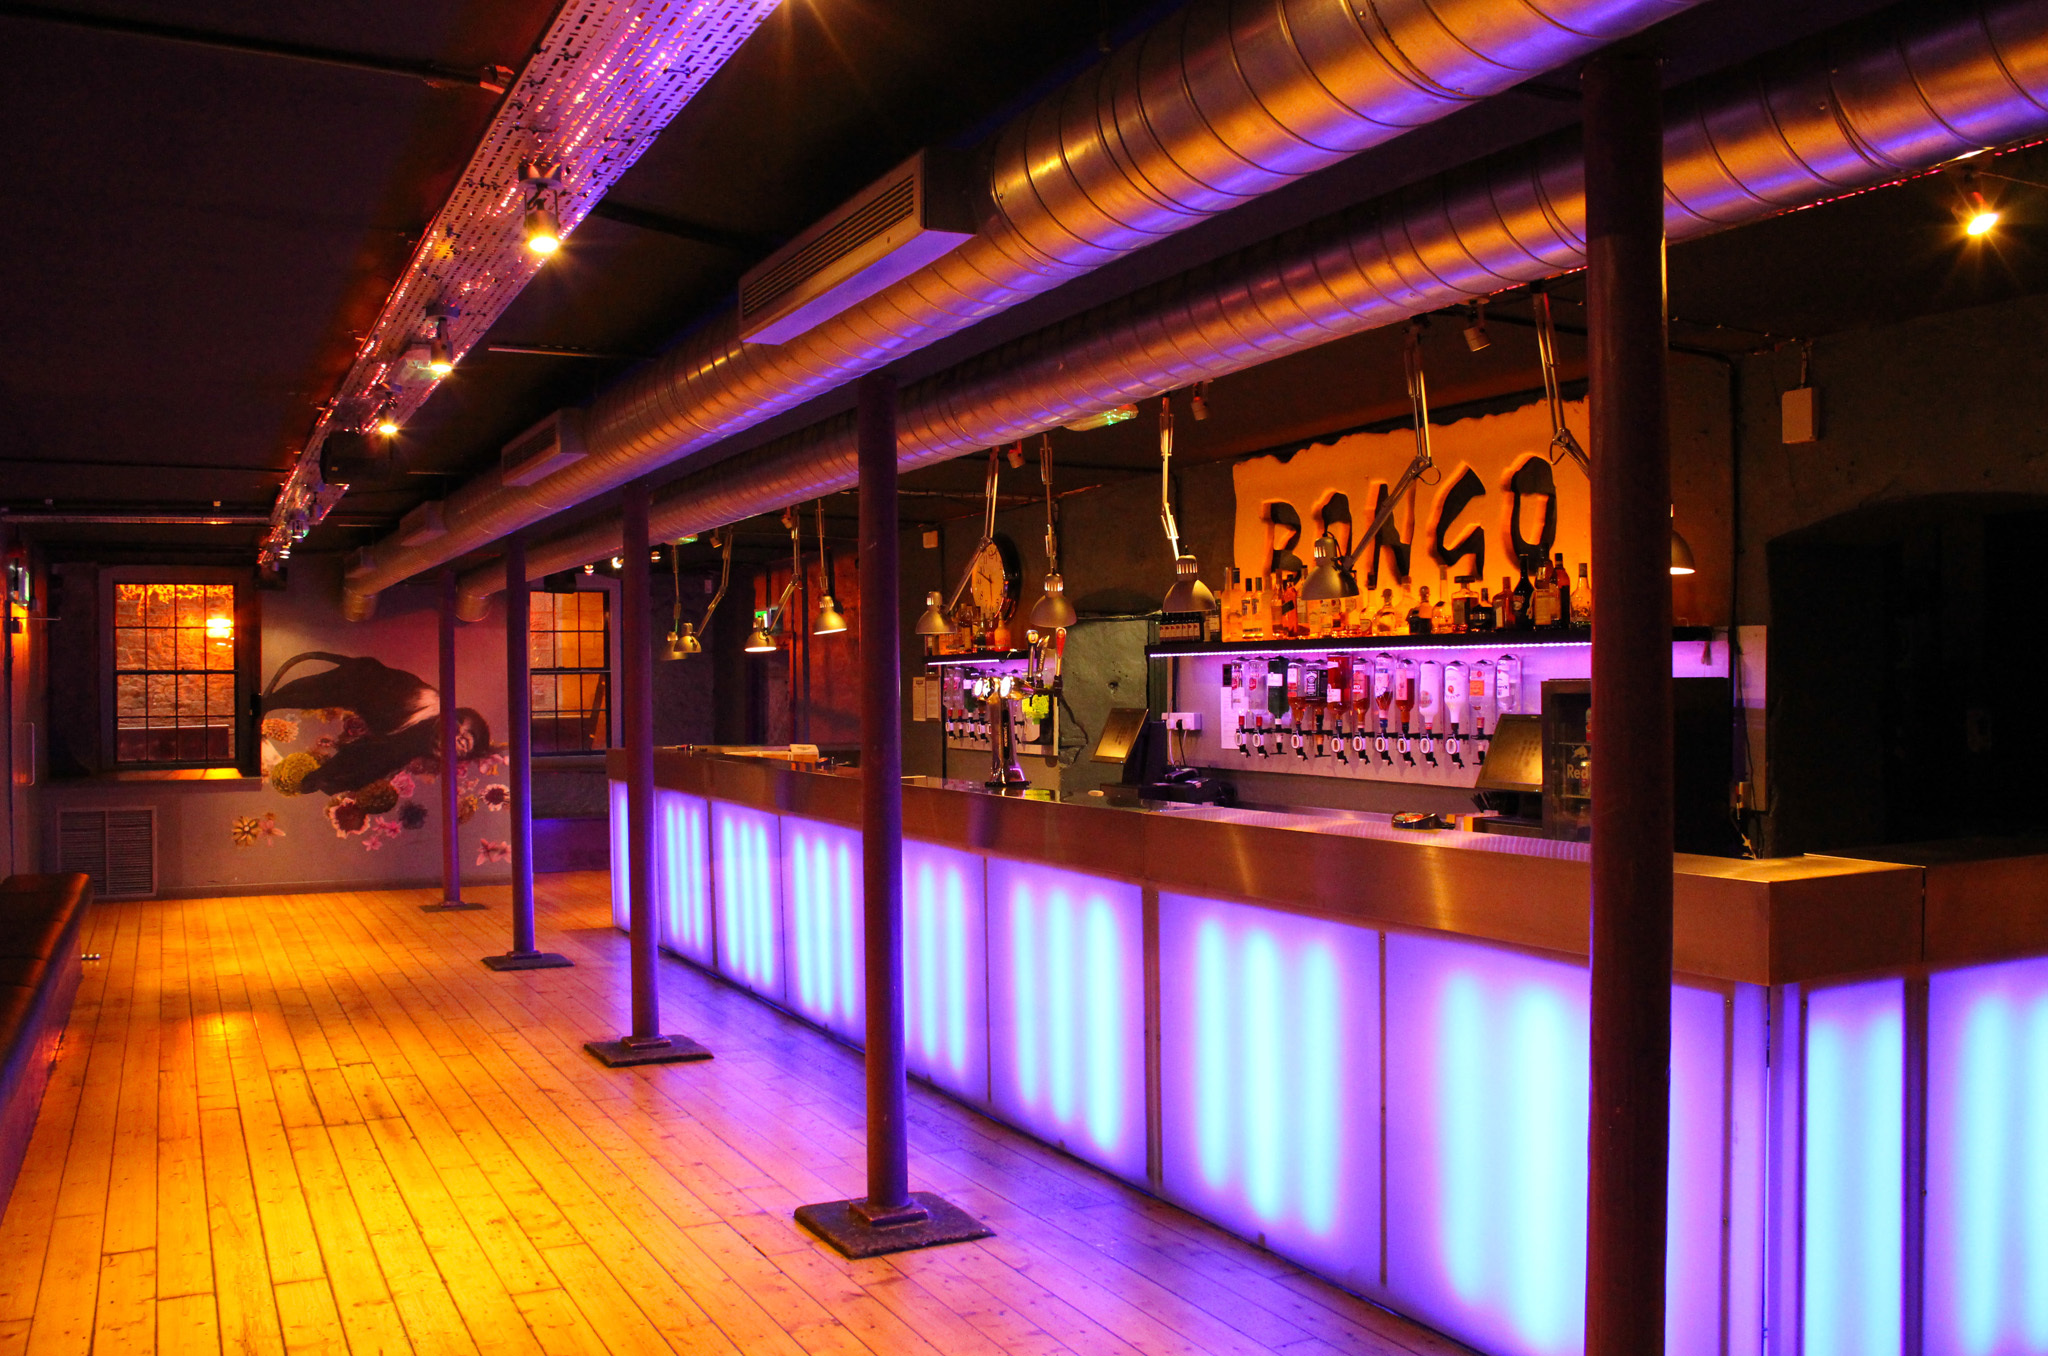 The Bongo Club